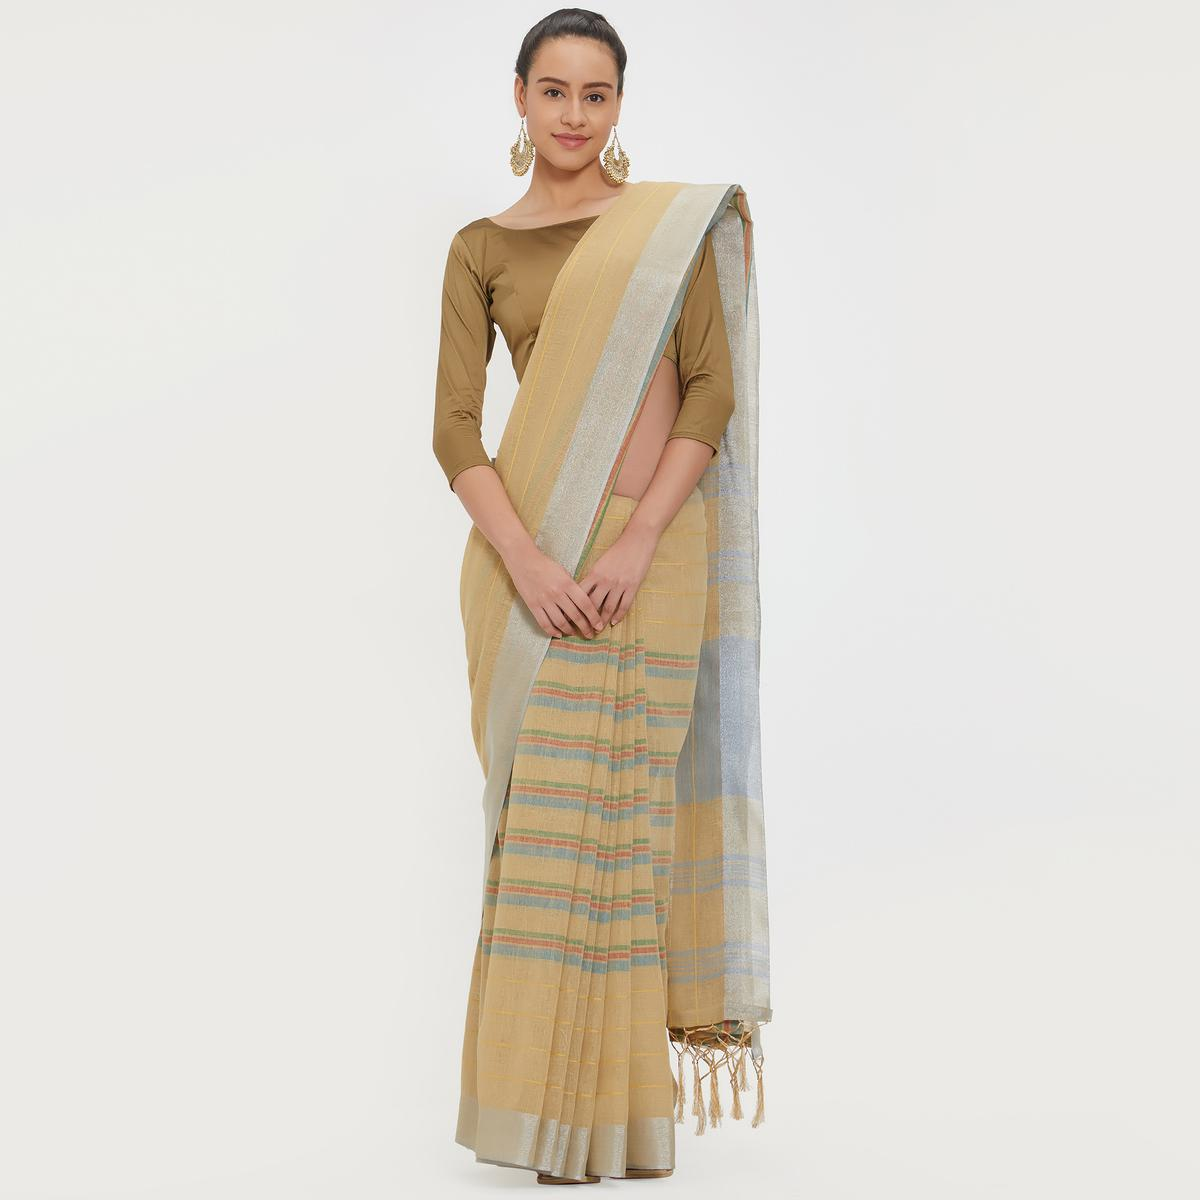 Exceptional Beige Colored Casual Wear Linen Saree With 2 Blouse Pieces